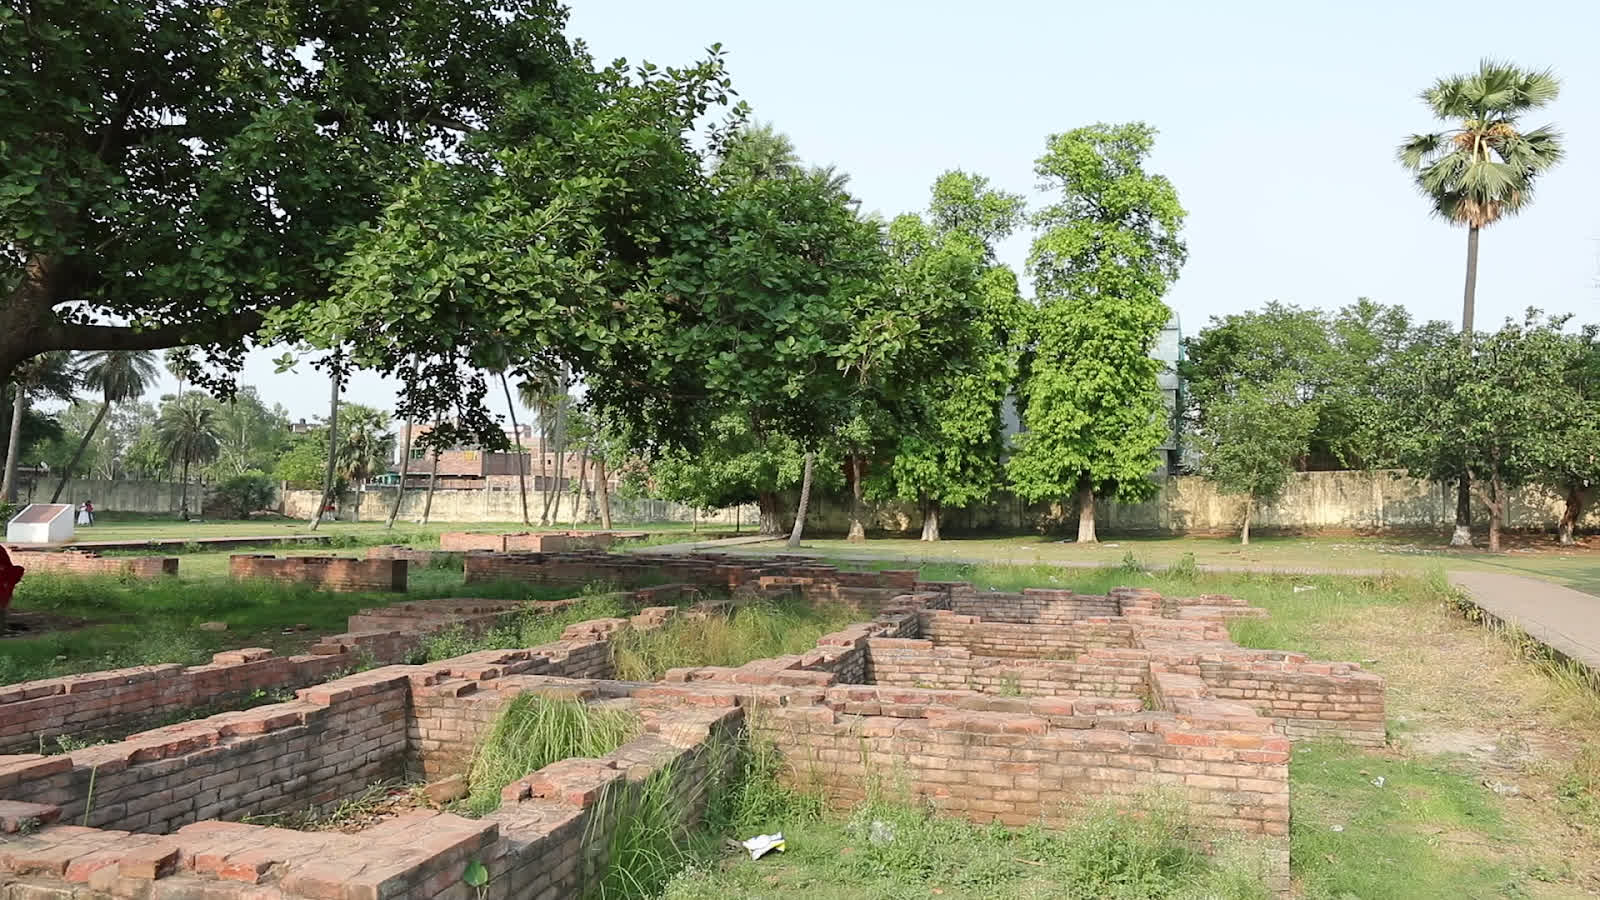 Remains of old structures at Patna